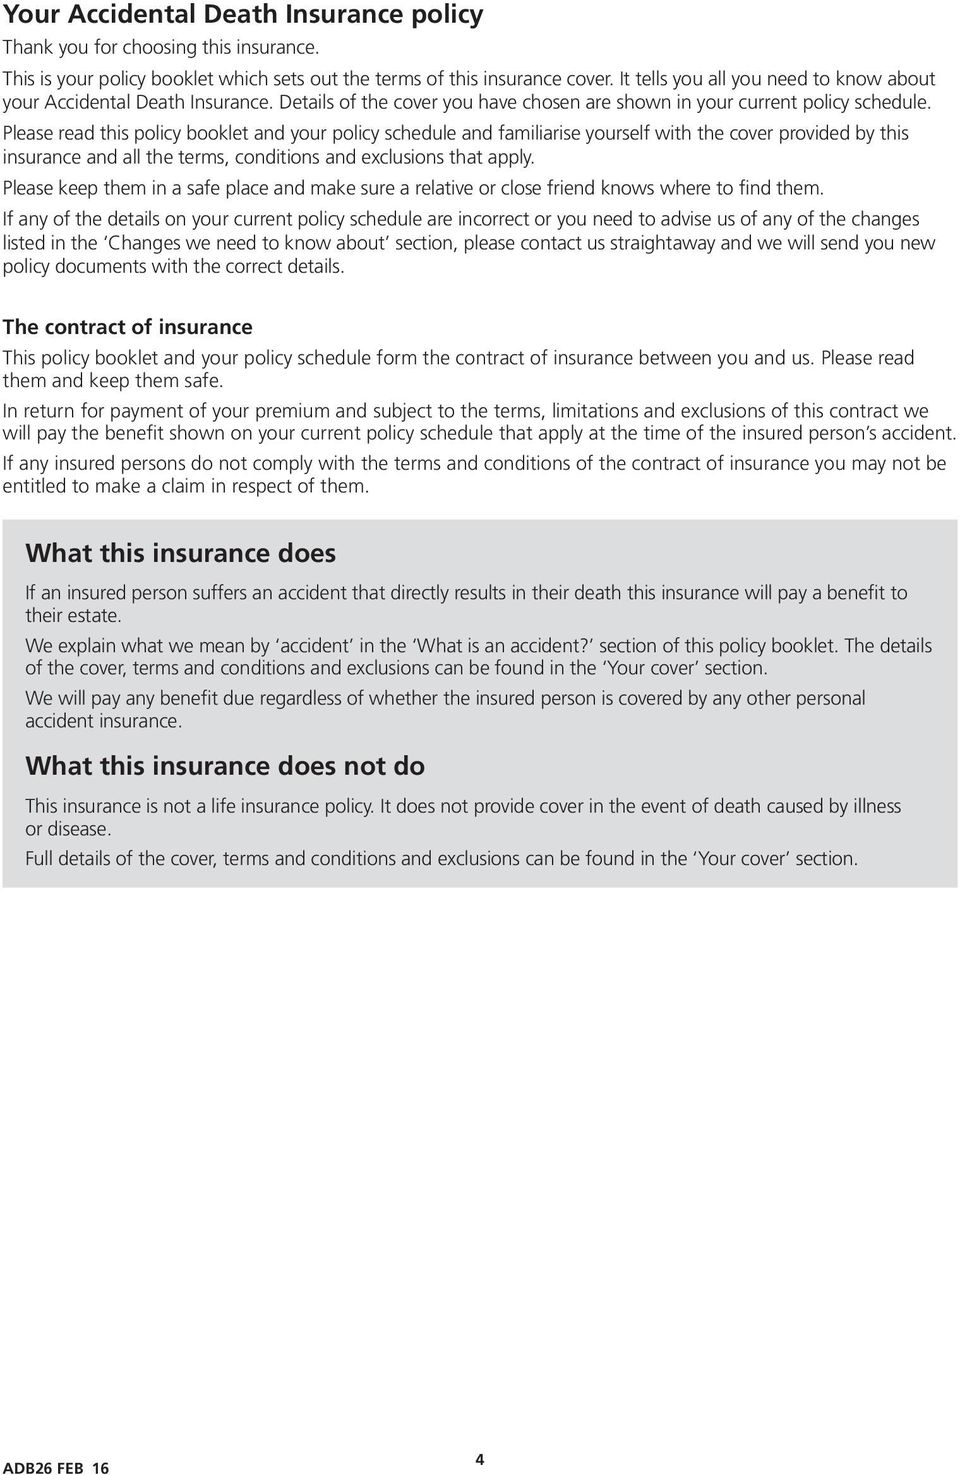 Please read this policy booklet and your policy schedule and familiarise yourself with the cover provided by this insurance and all the terms, conditions and exclusions that apply.